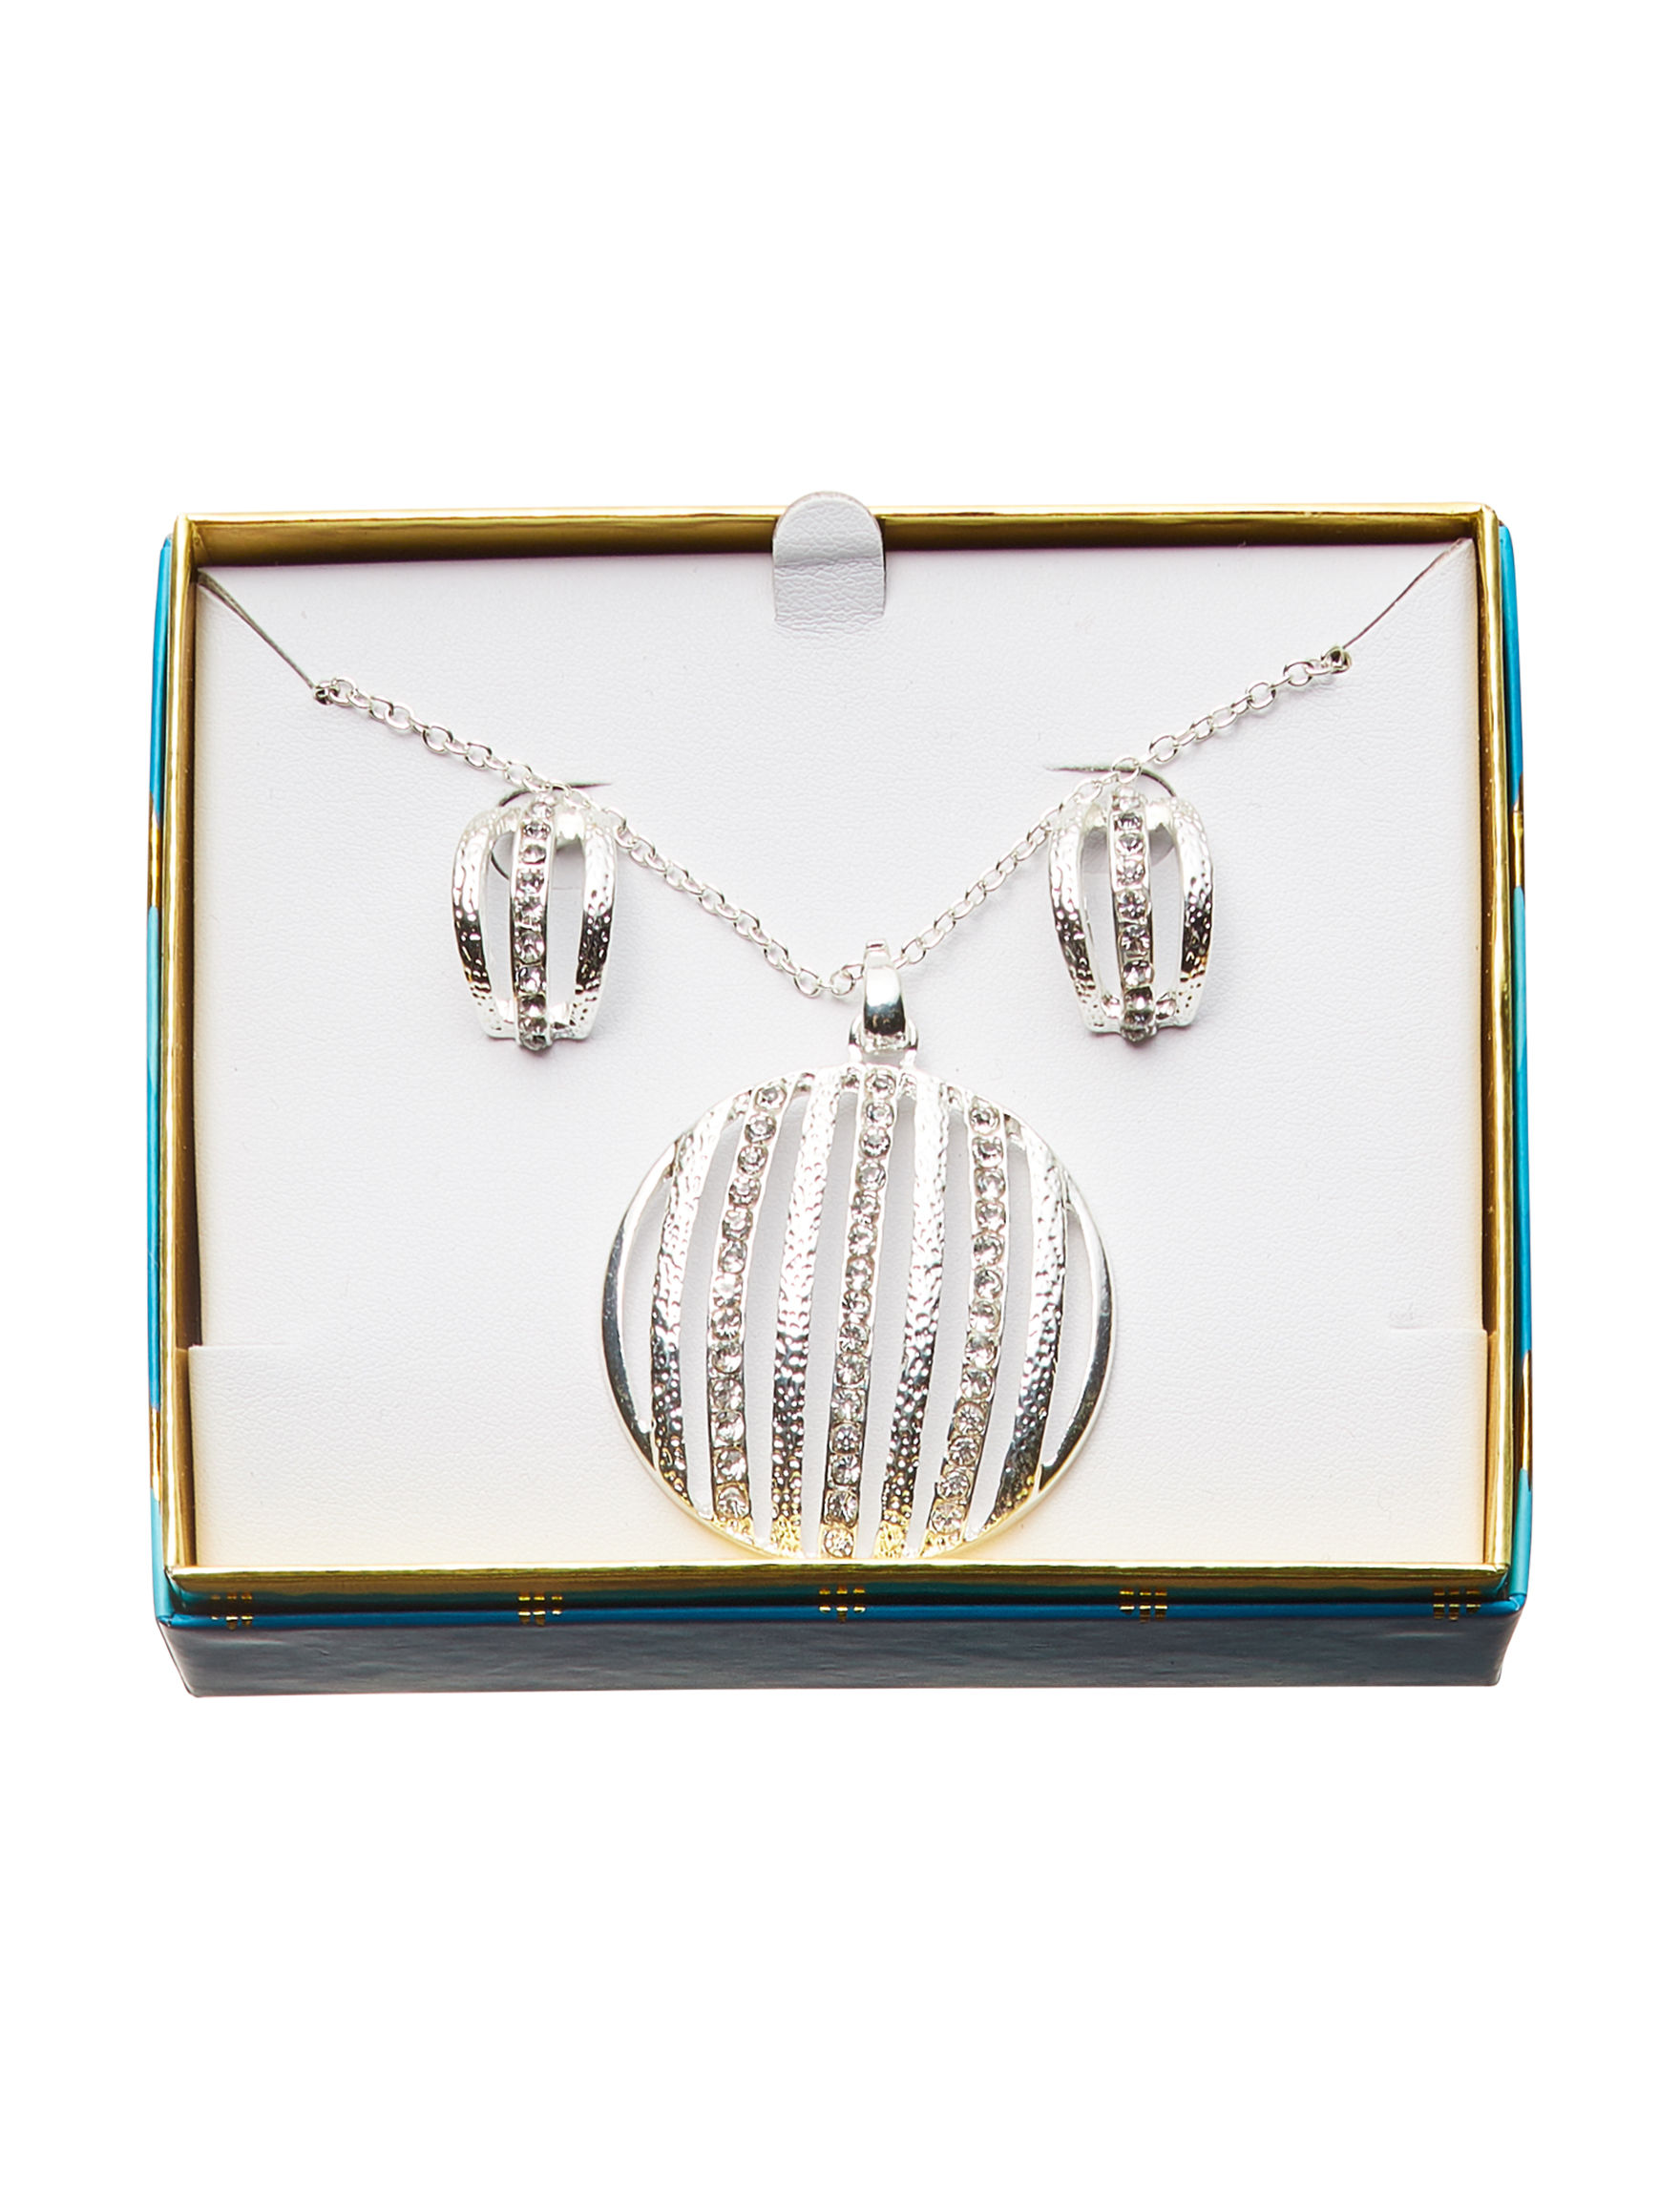 Tanya Silver Studs Earrings Jewelry Sets Necklaces & Pendants Fashion Jewelry